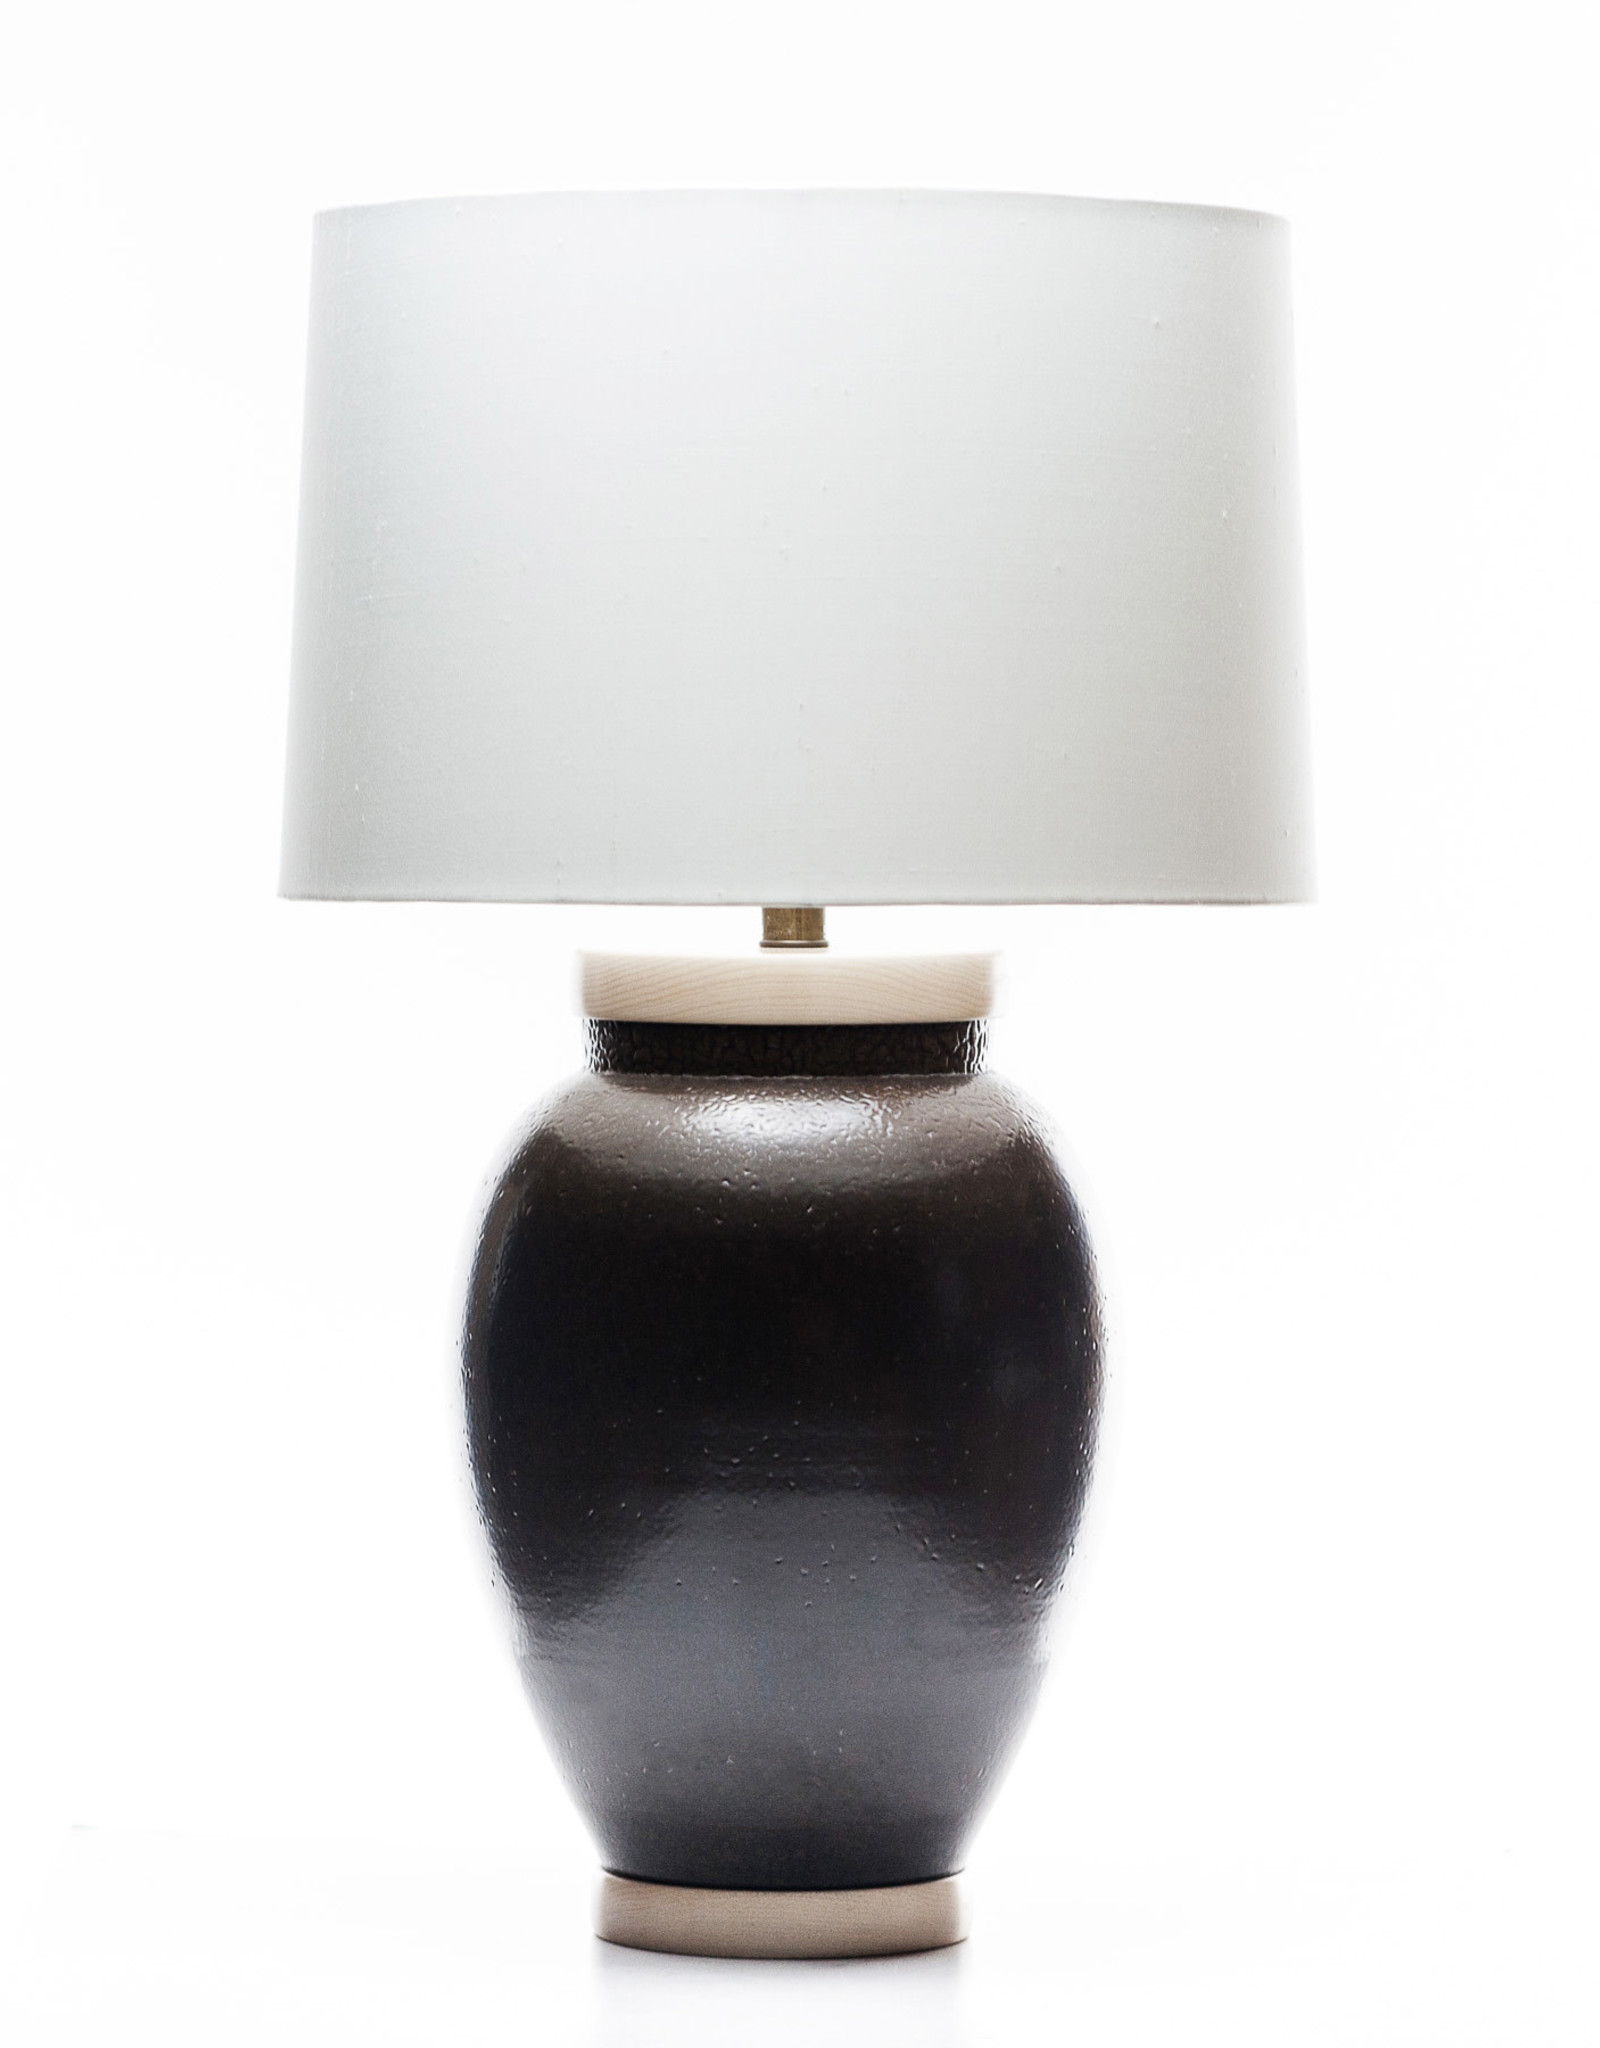 Lawrence & Scott Sybil Porcelain Table Lamp in Espresso Glaze